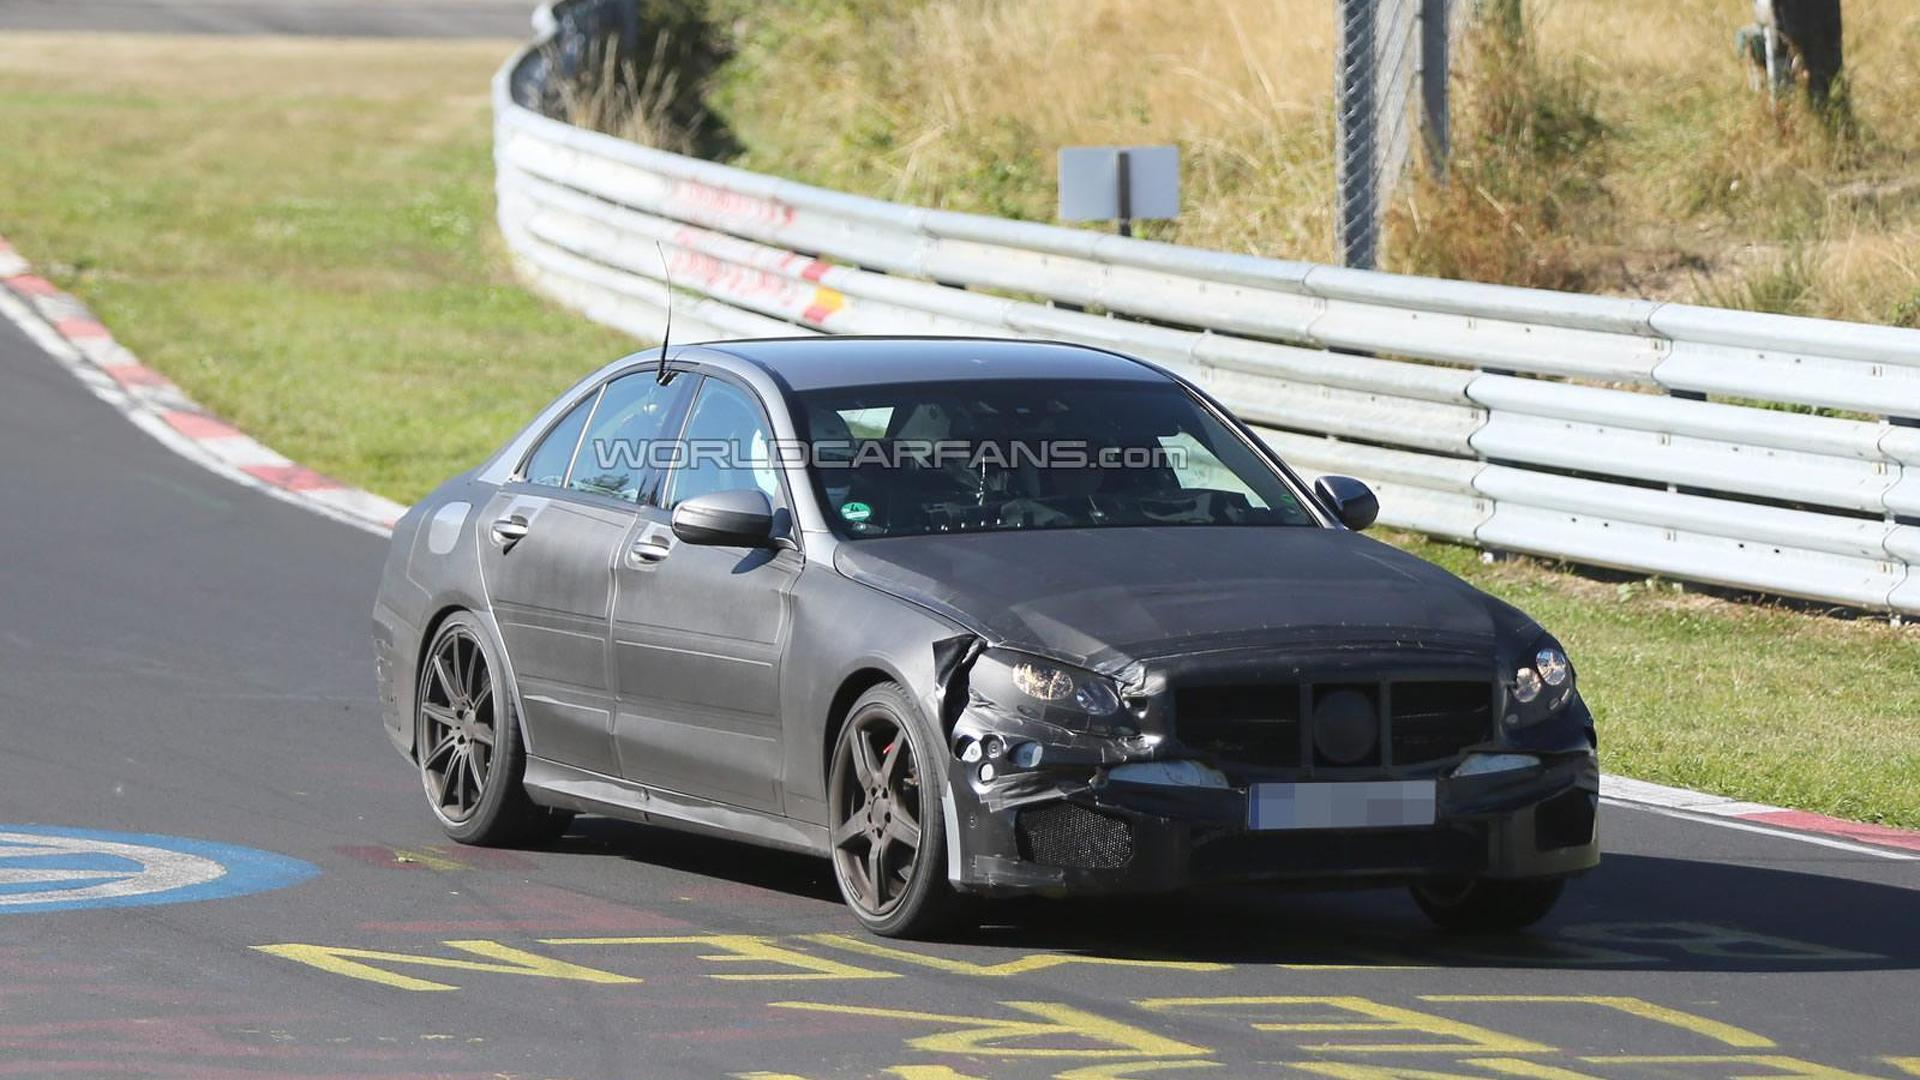 Mercedes-Benz C63 AMG coming late 2014 with V8 4.0-liter twin-turbo, hybrid due 2015 - report